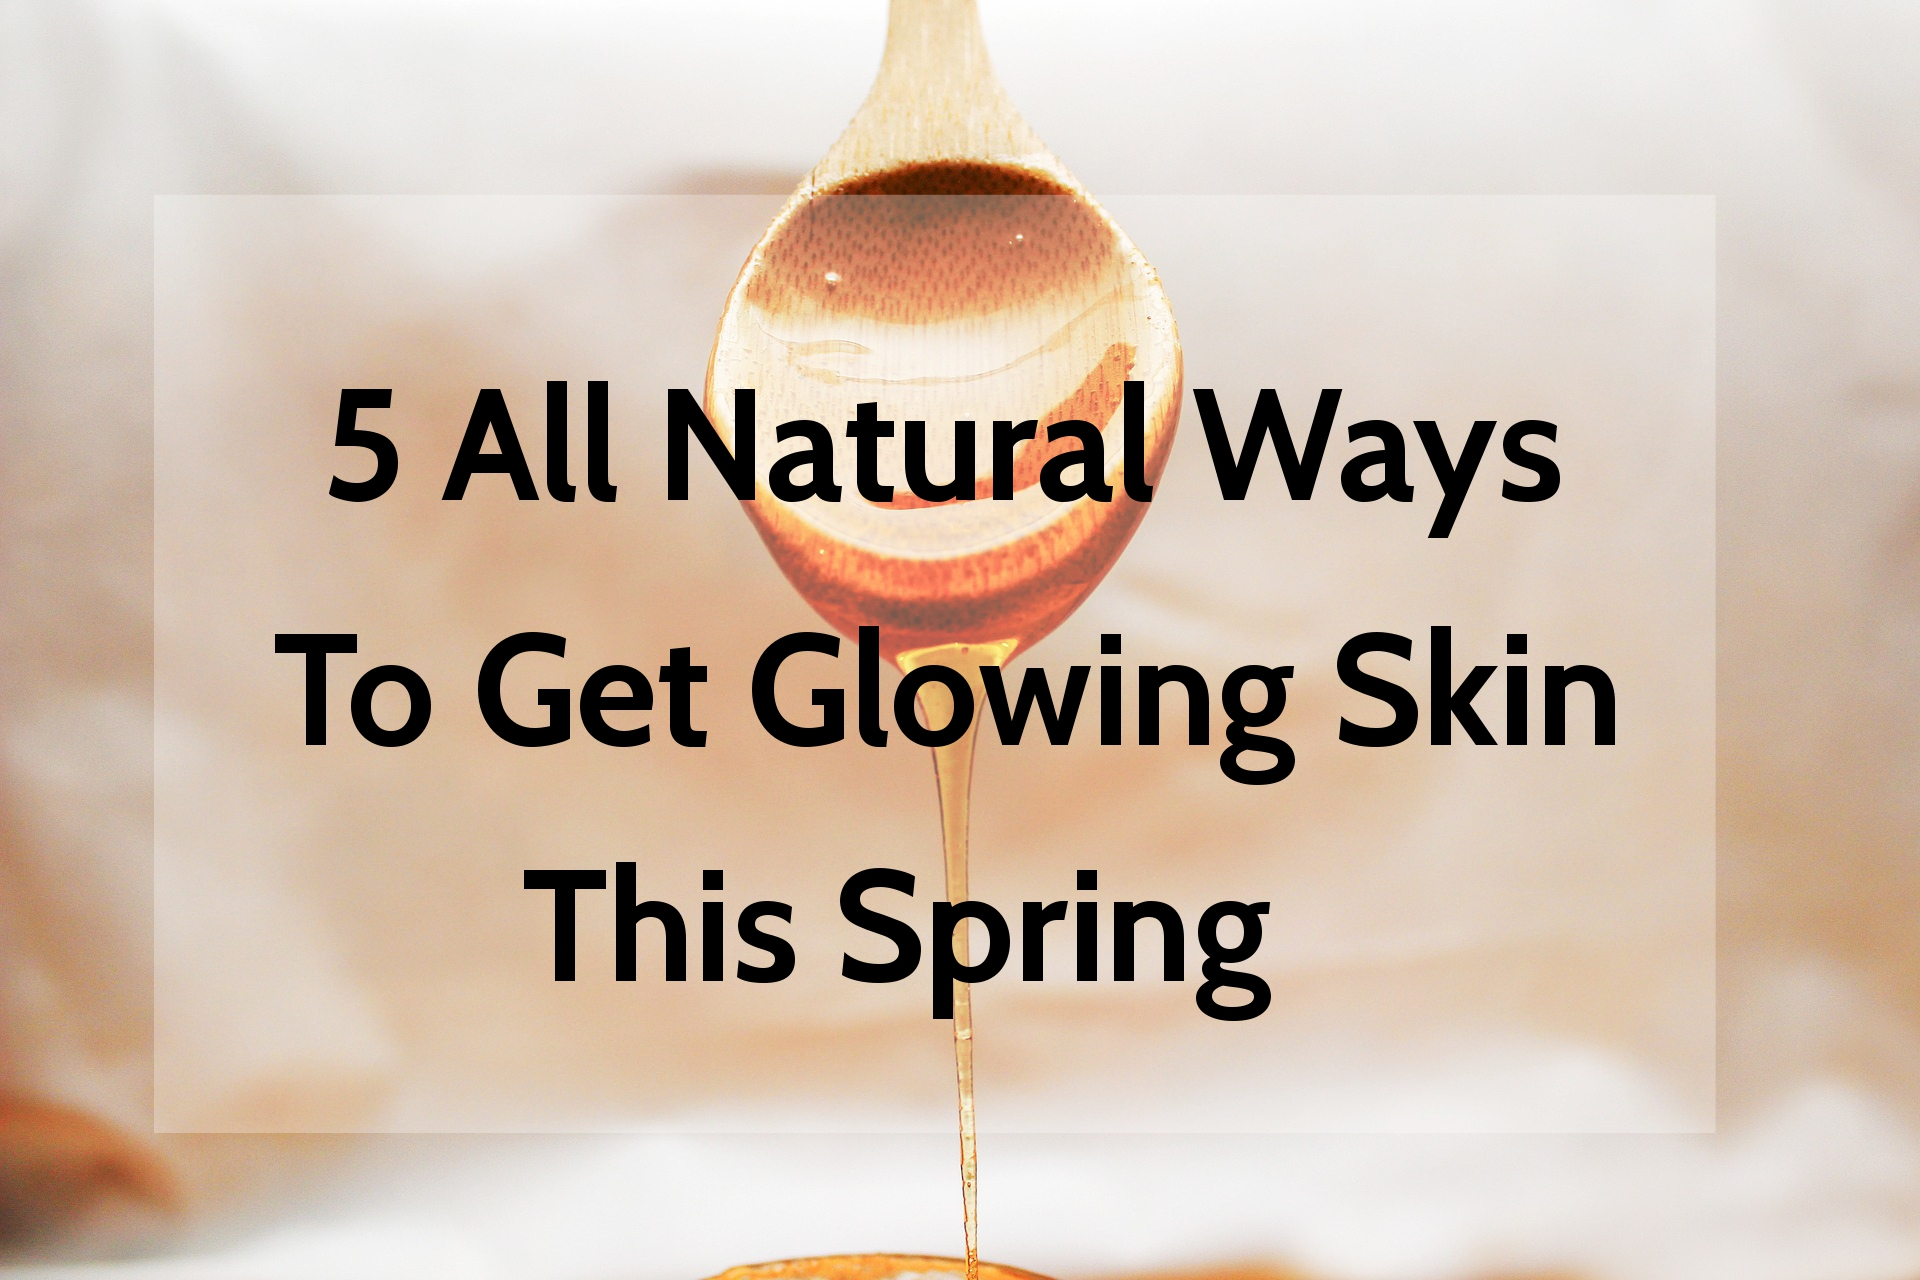 5 All Natural Ways To Get Glowing Skin This Spring | www.xperimentsinliving.com